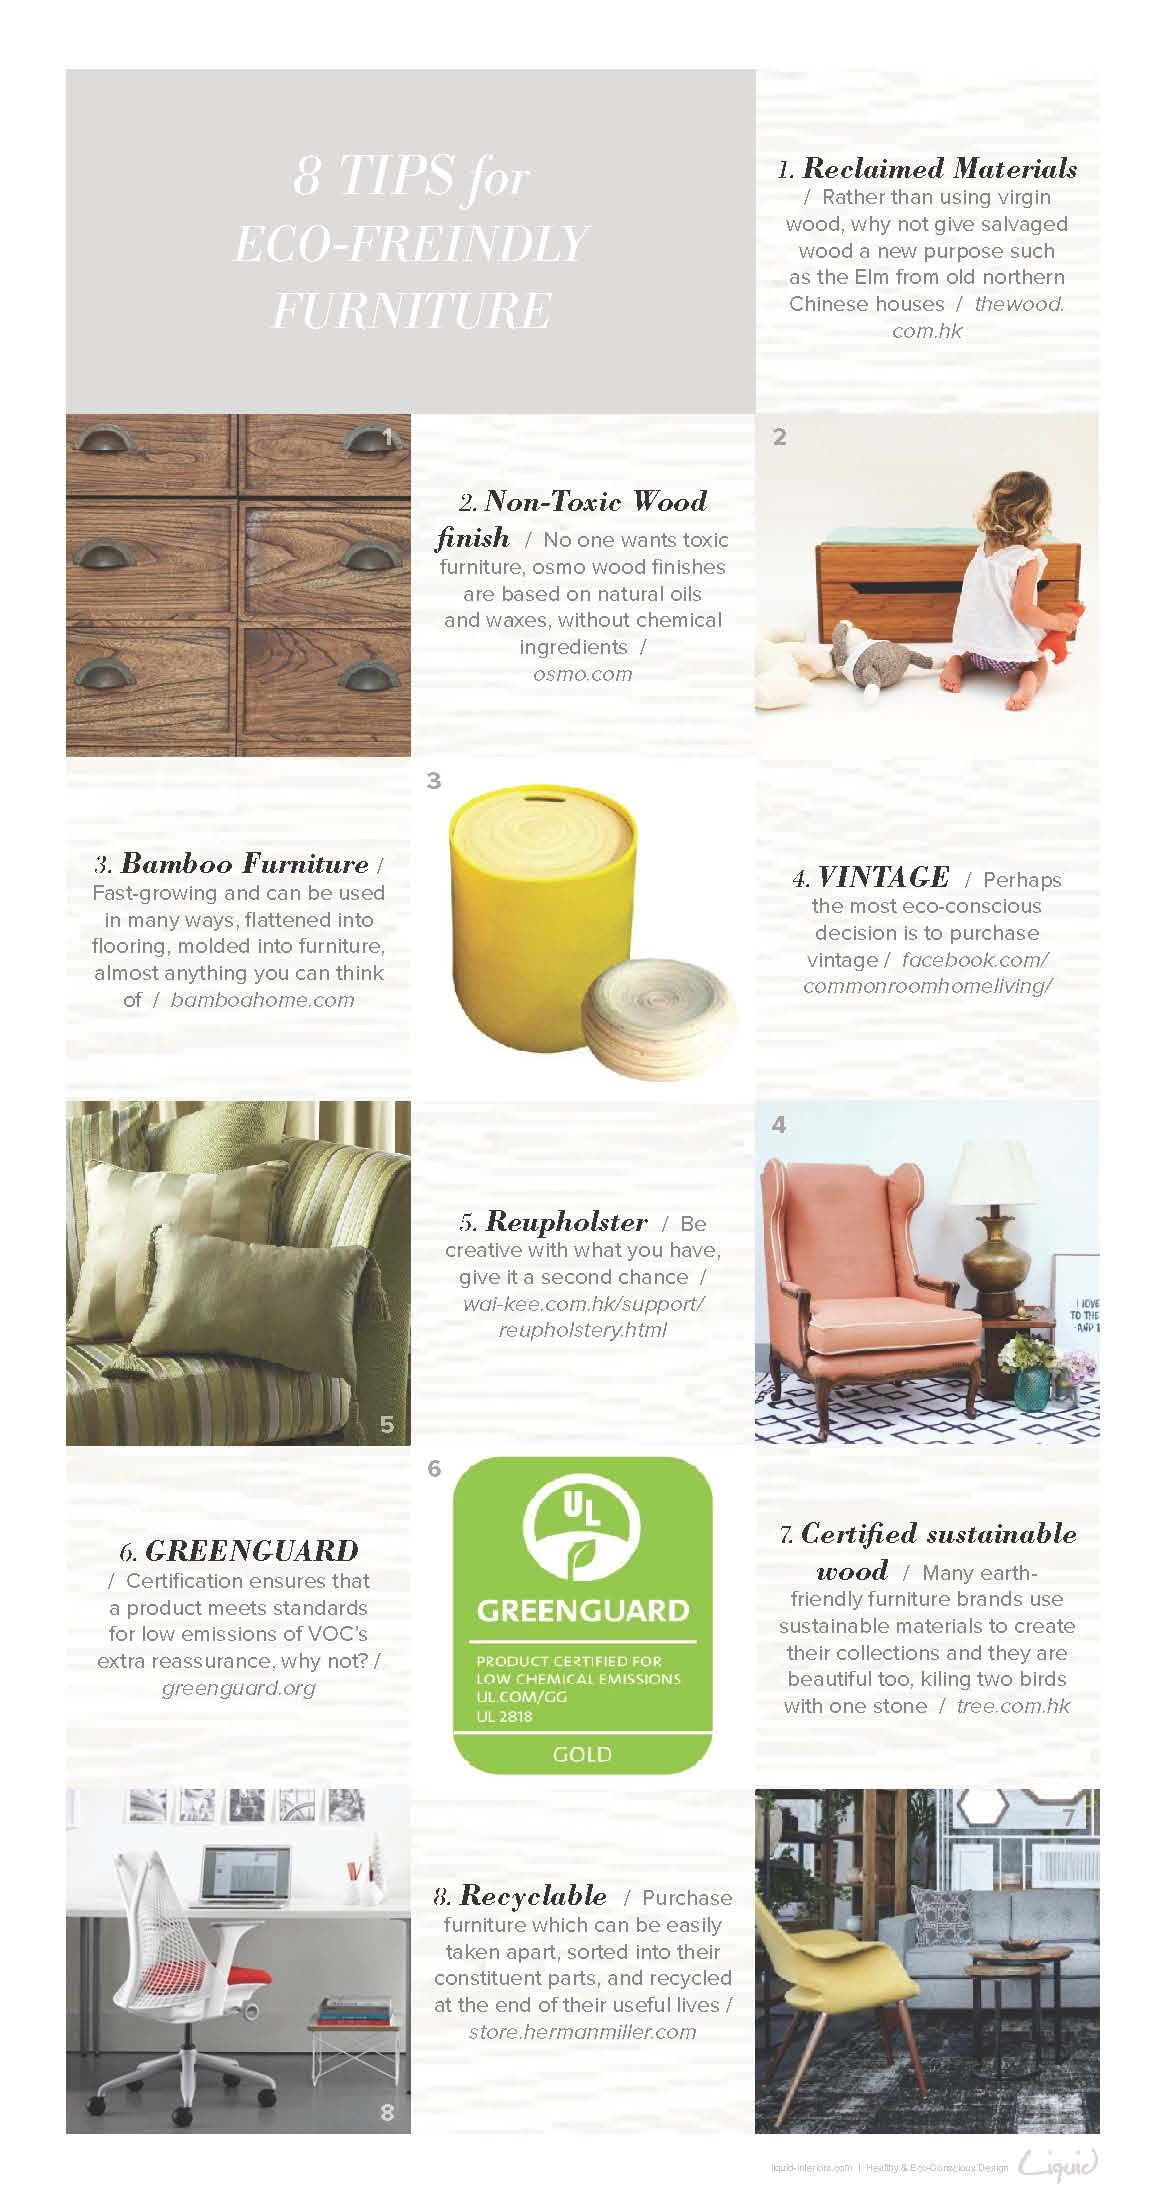 Surprising 8 Tips For Eco Friendly Furniture Liquid Blog Posts Download Free Architecture Designs Embacsunscenecom